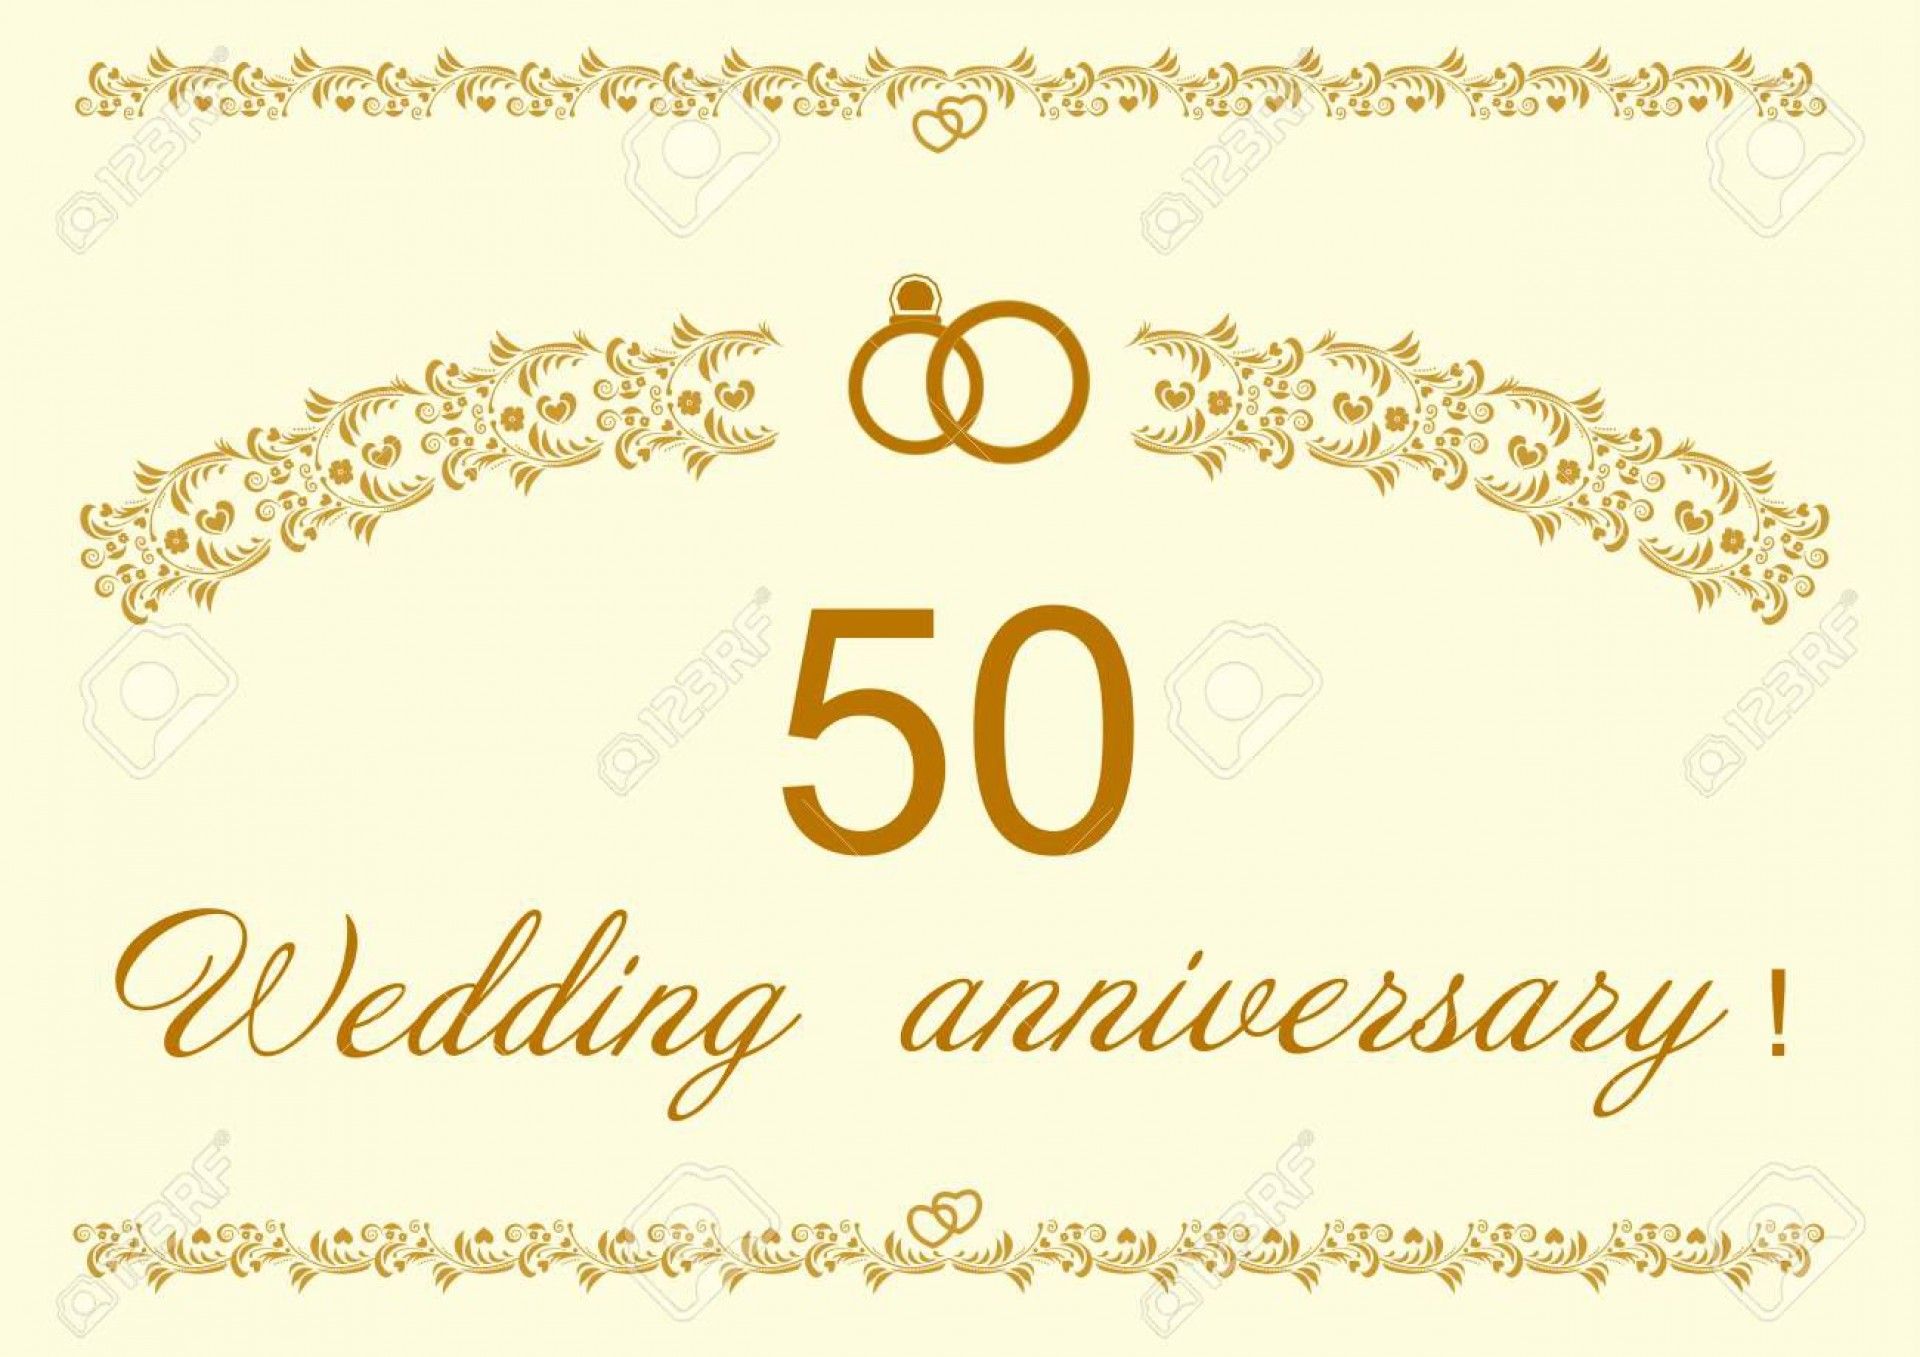 006 Remarkable 50th Anniversary Invitation Design Image  Designs Wedding Template Microsoft Word Surprise Party Wording Card Idea1920